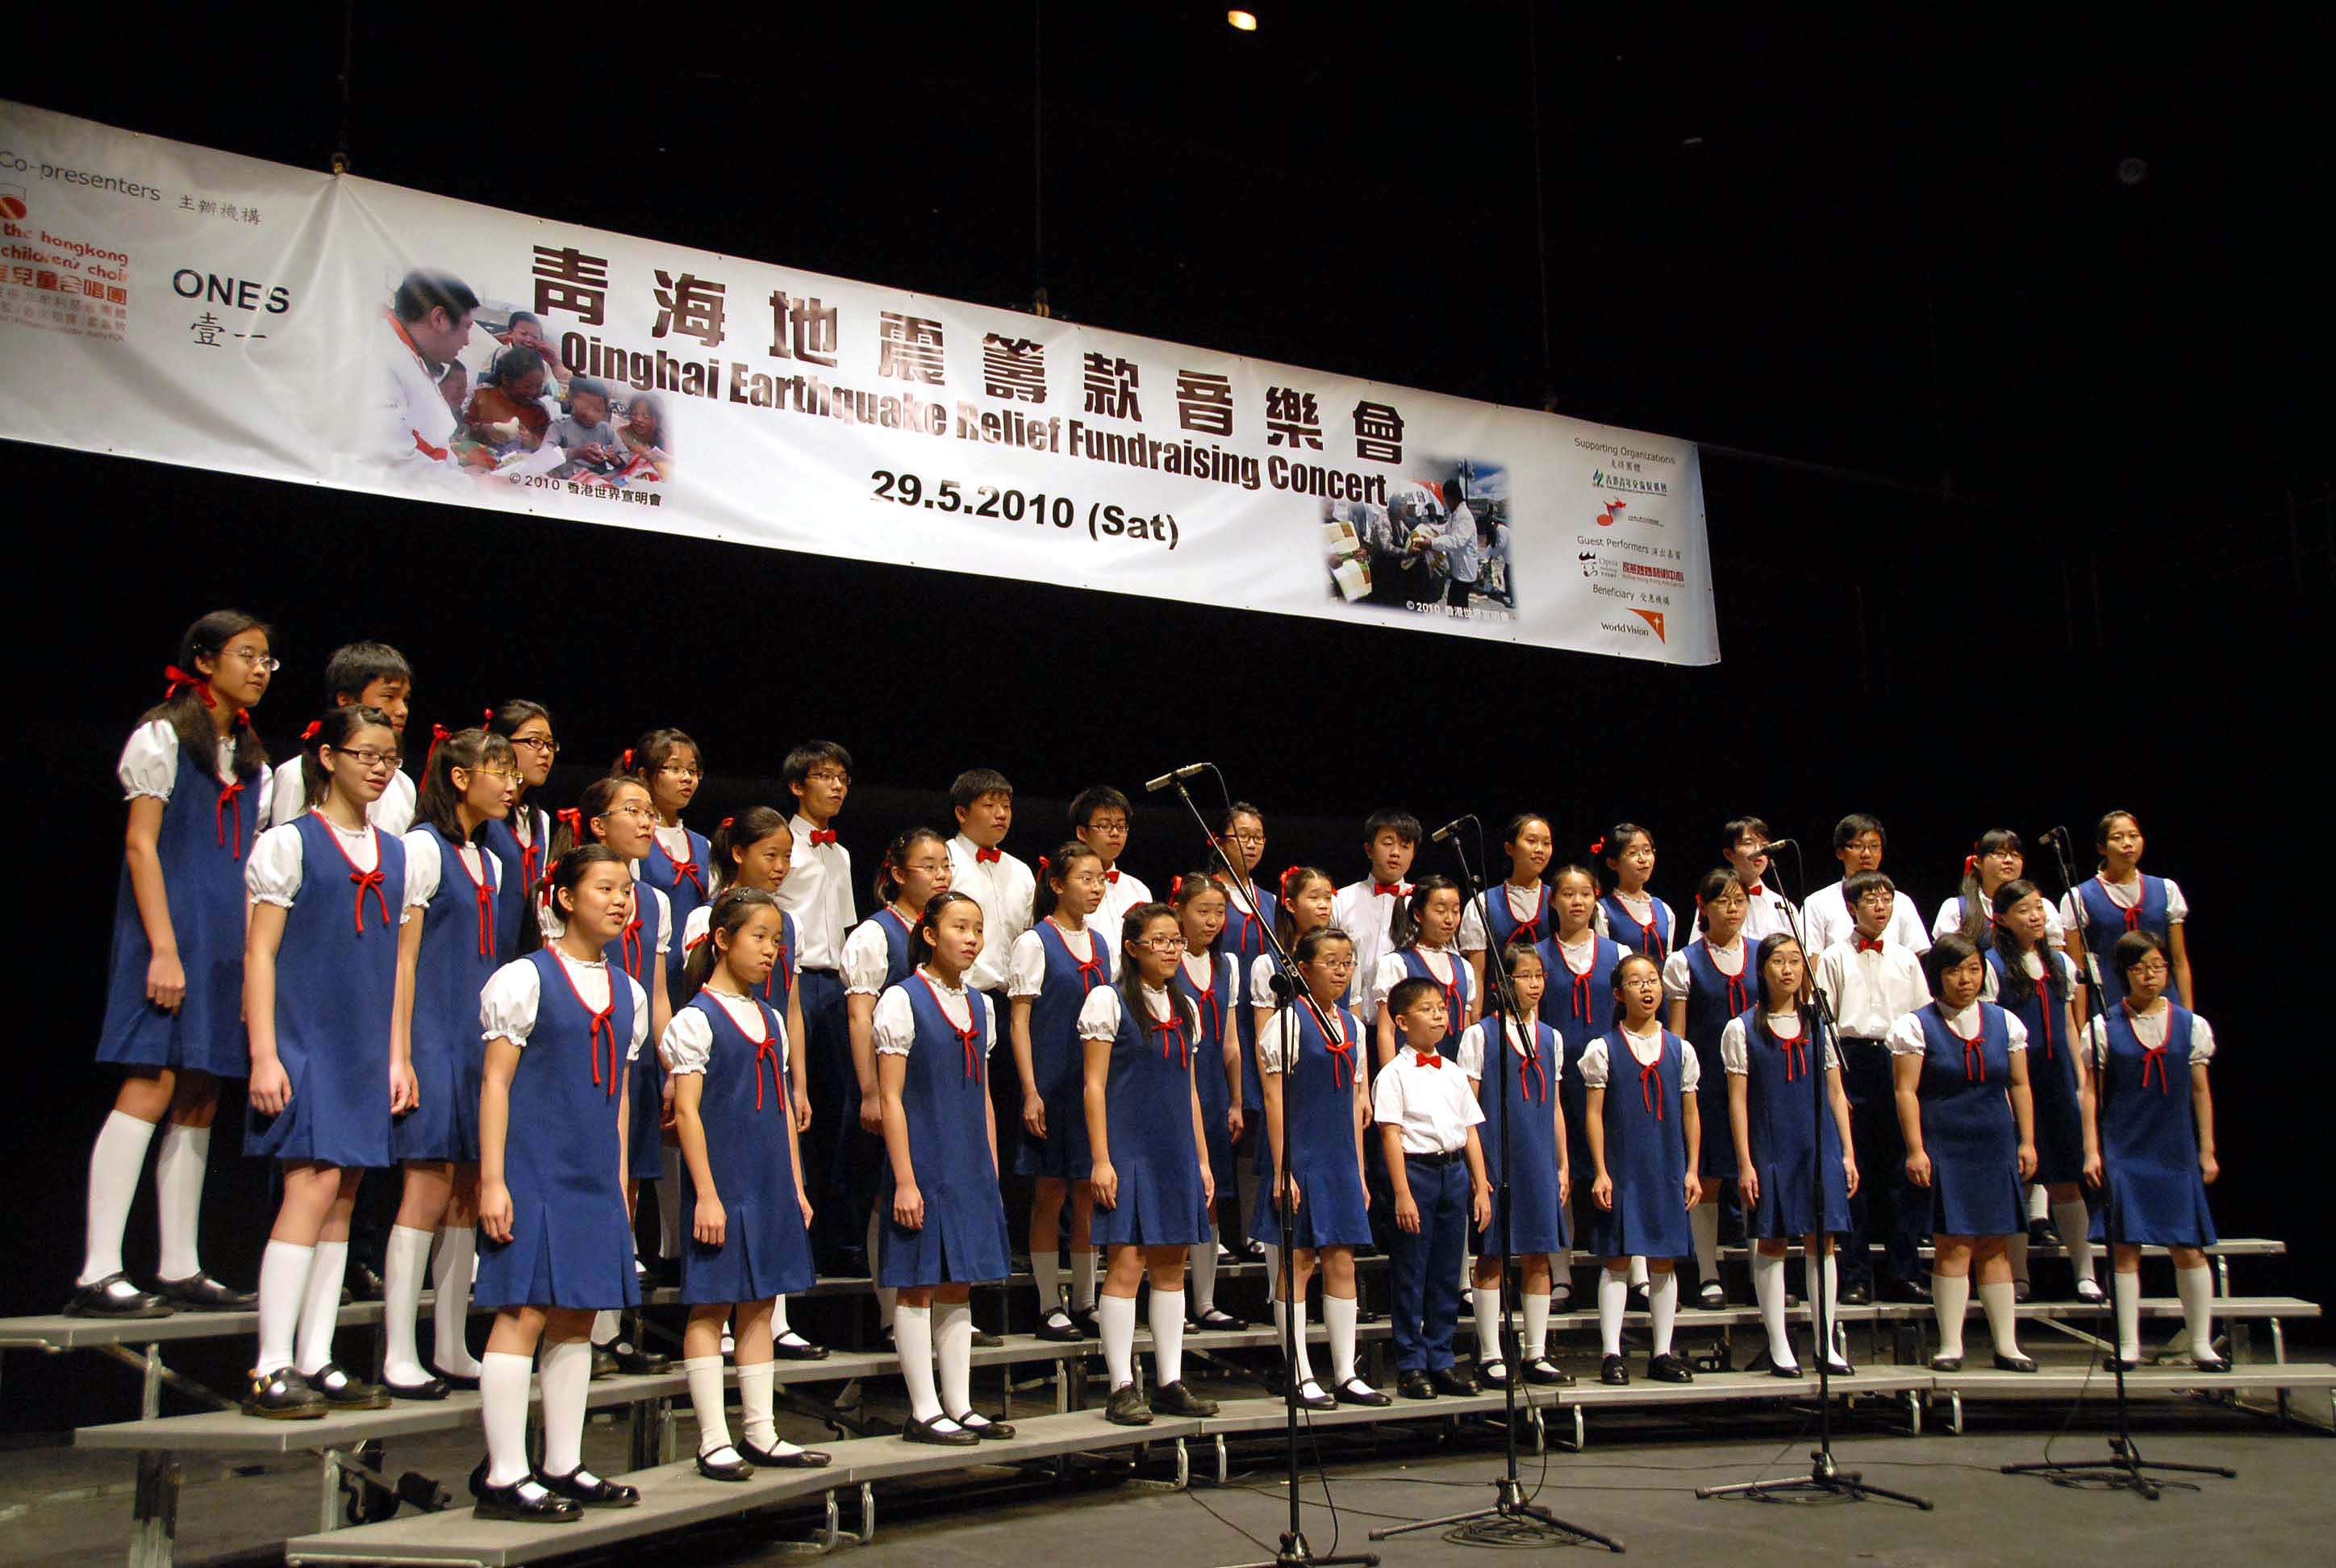 https://hkcchoir.org.hk/sites/default/files/charity_2010_qinghai.jpg